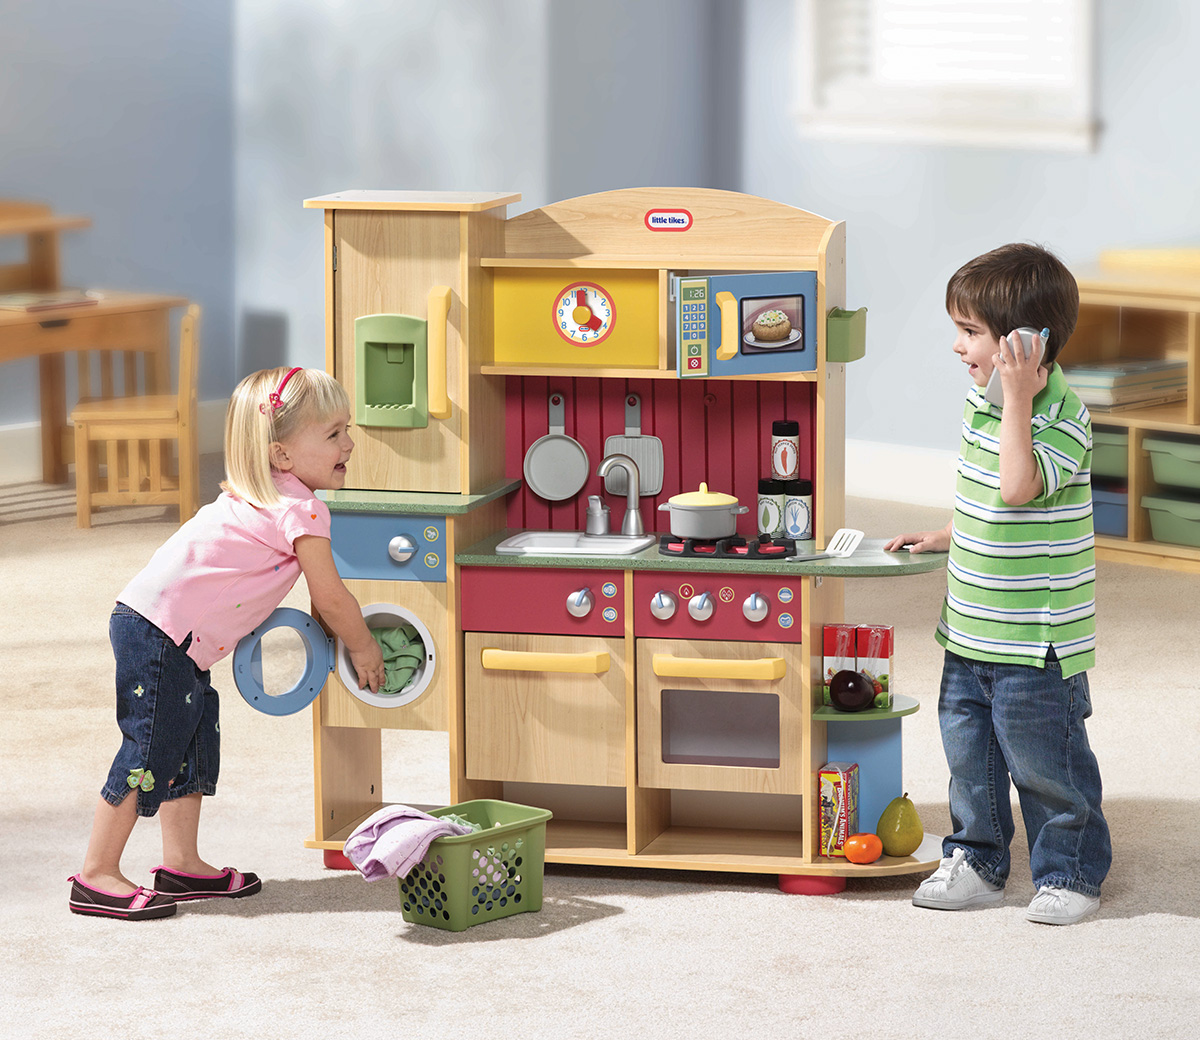 Little Tikes Cookin' Creations Premium Wood Kitchen. How To Get Rid Of Musty Smell In Basement. Basement Workshop Ideas. Half Wall Basement. Thin Basement Membrane Disease Symptoms. Epoxy Basement Floor Paint Colors. Stop Water In Basement. Flooded Basement Cleanup Cost. Wet Bars For Basement